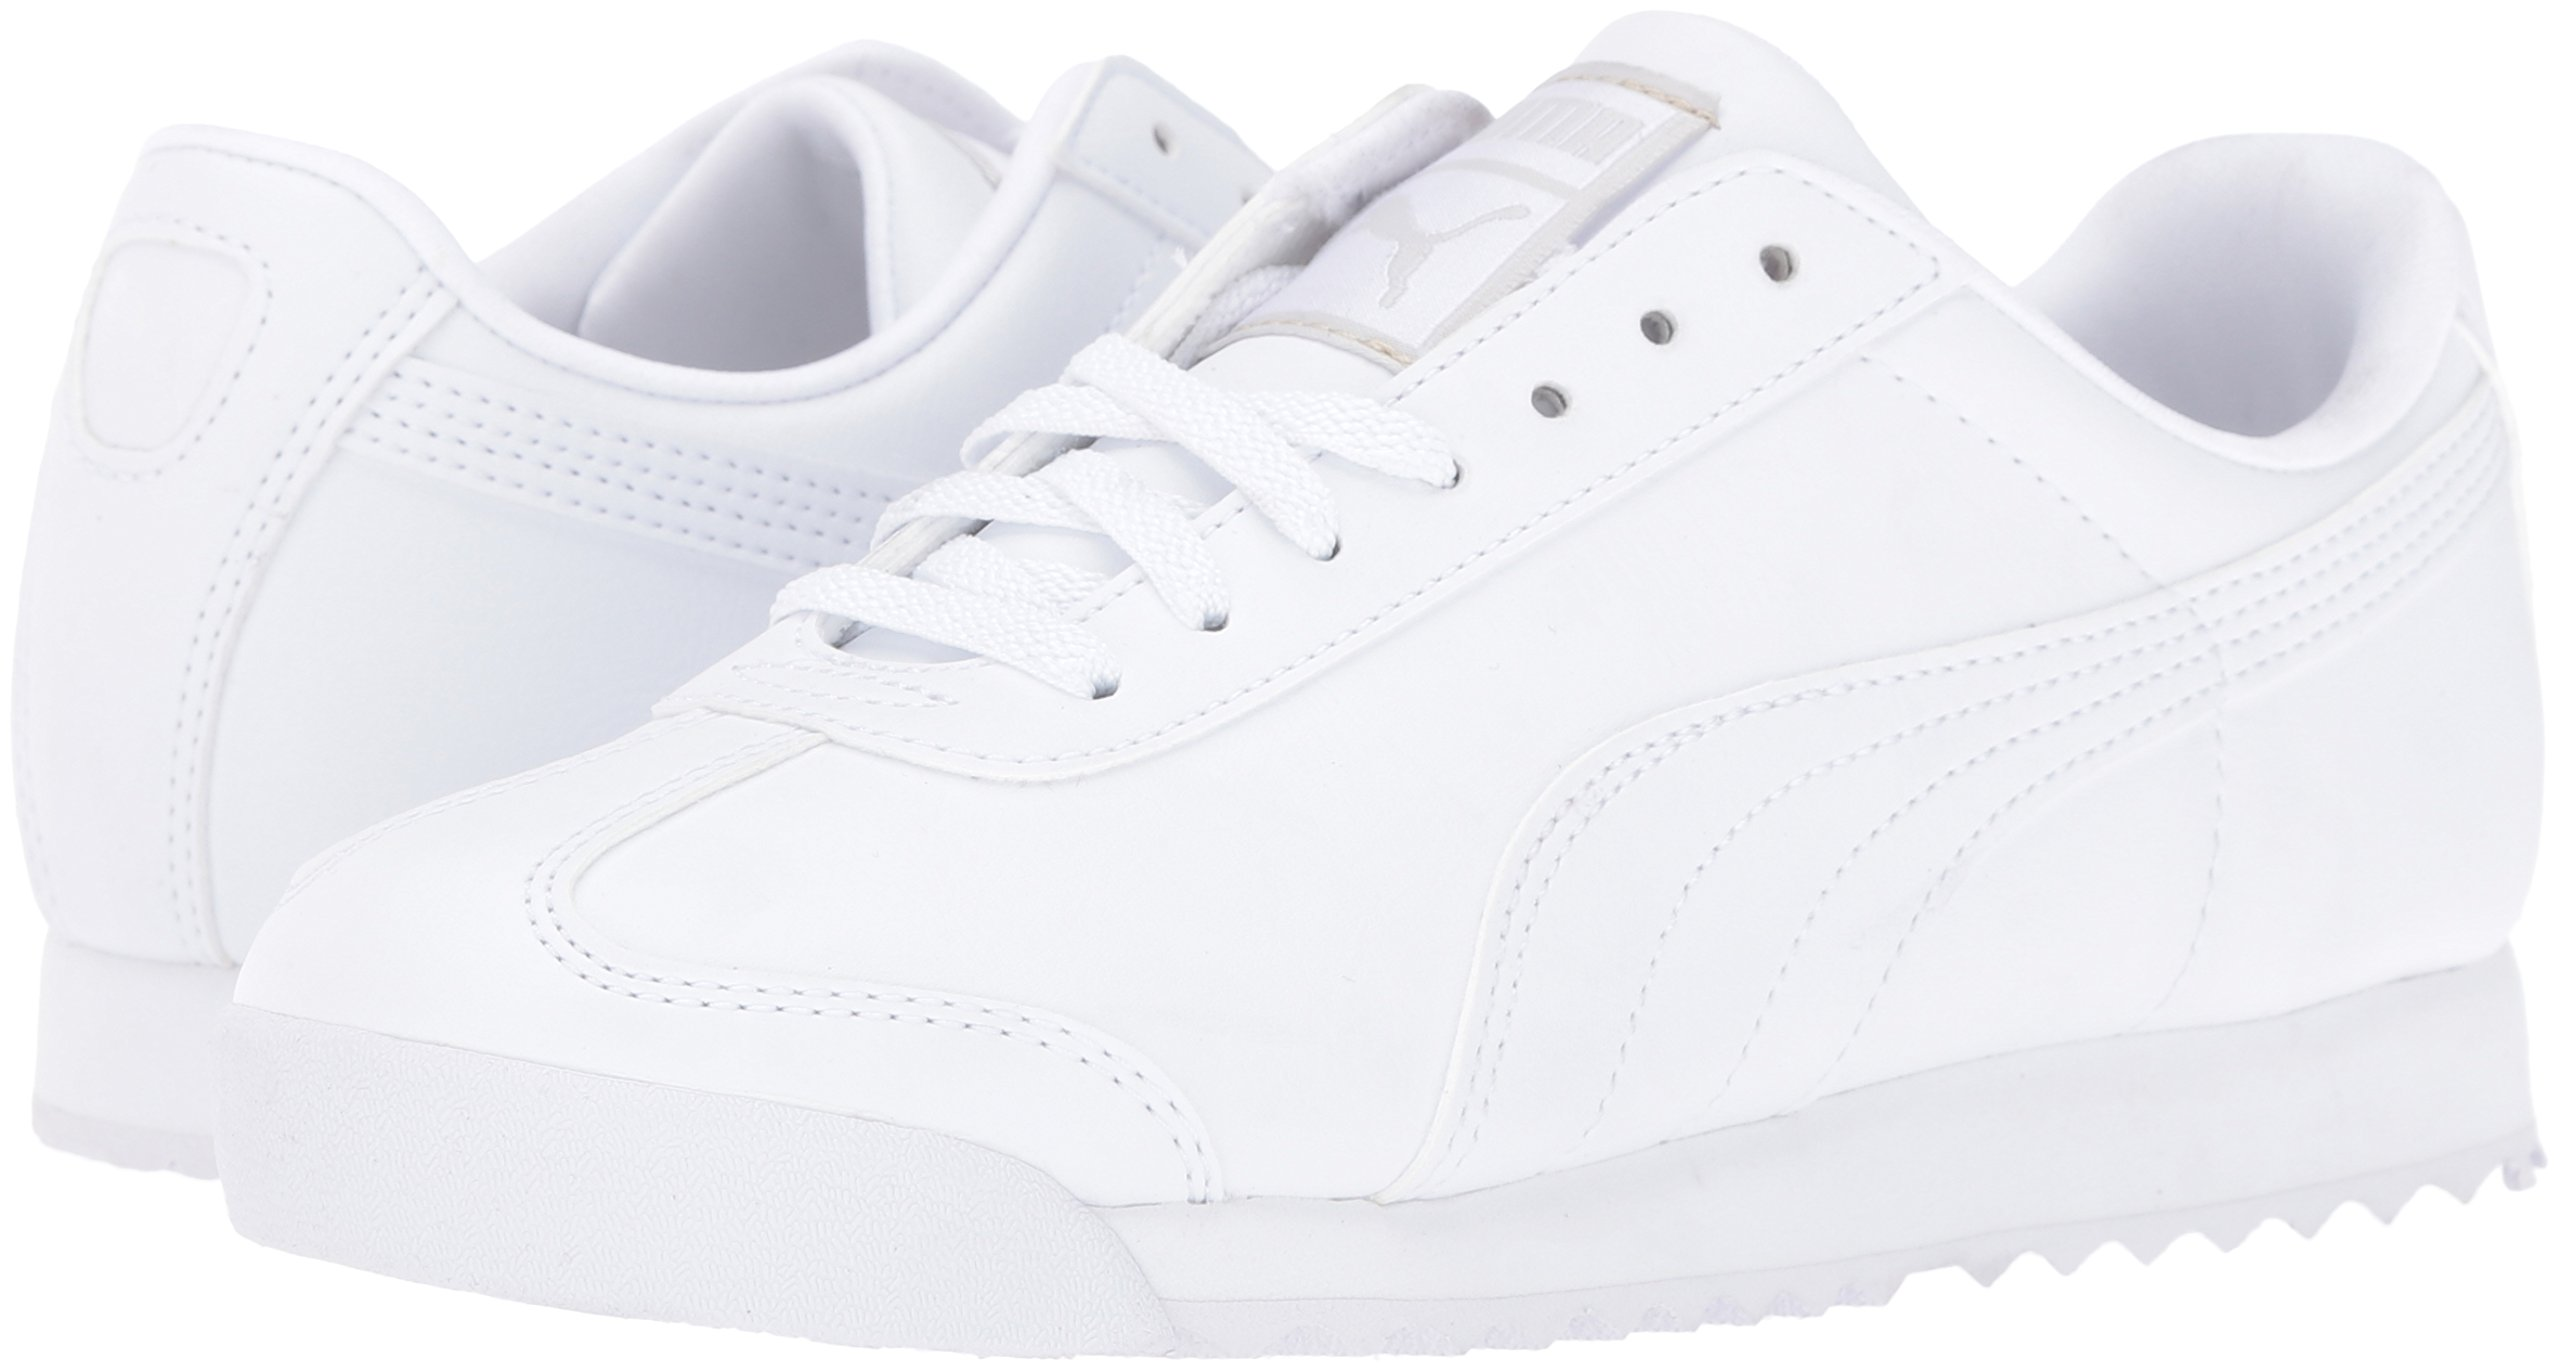 PUMA Roma Basic JR Sneaker , White/Light Gray, 3 M US Little Kid by PUMA (Image #6)